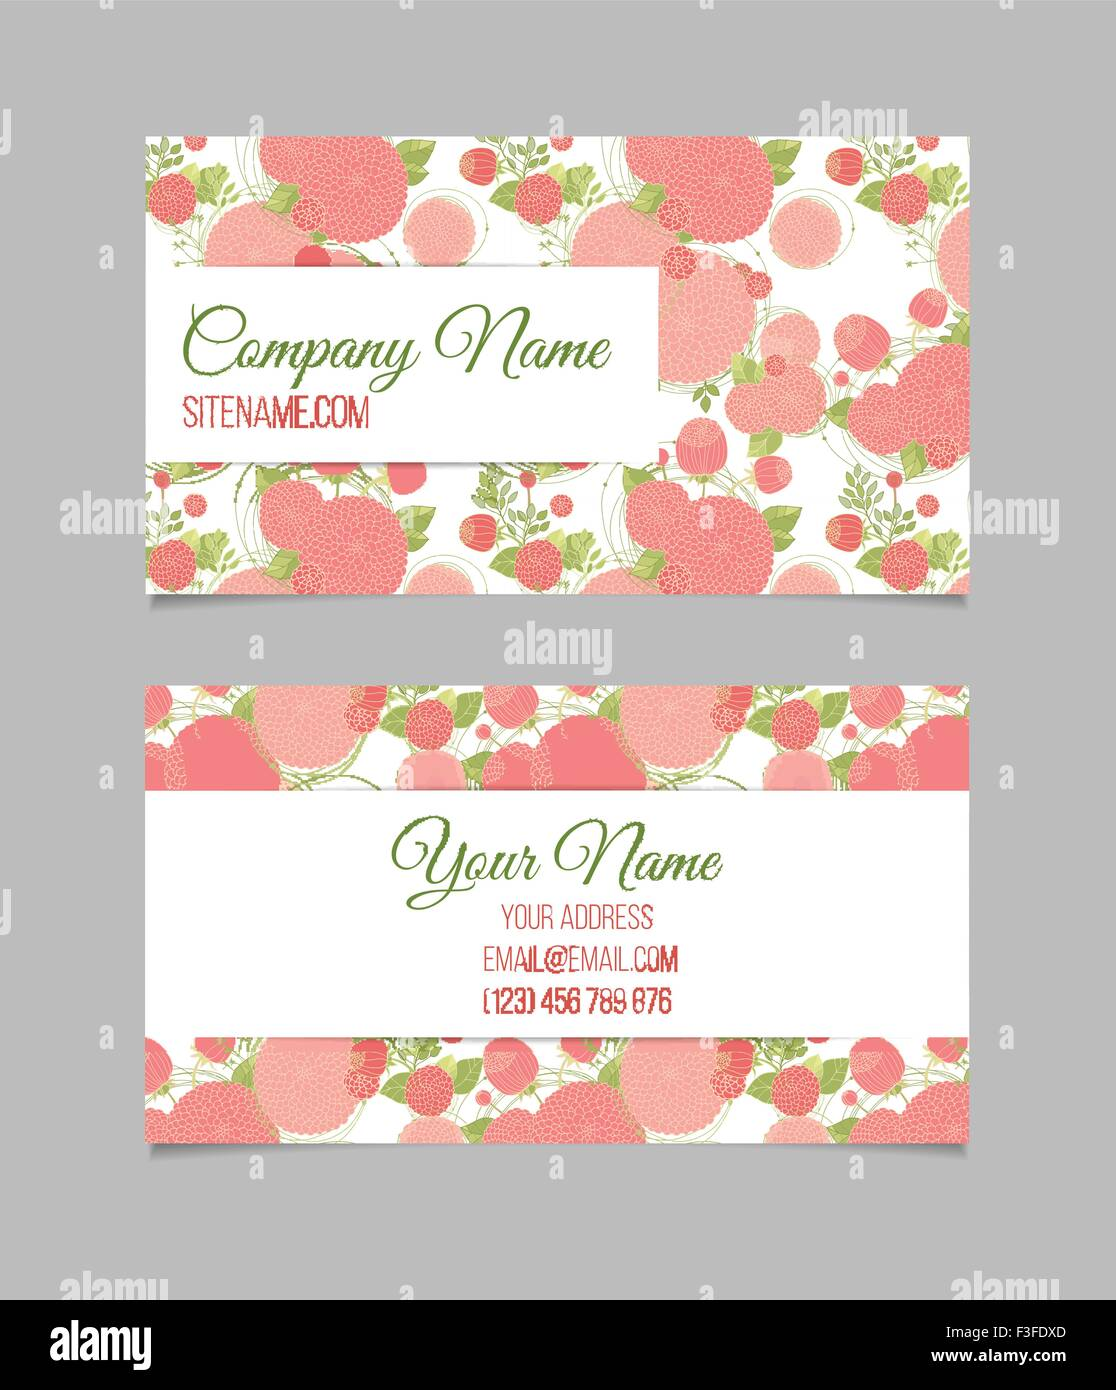 Double-sided floral business card Stock Vector Art & Illustration ...